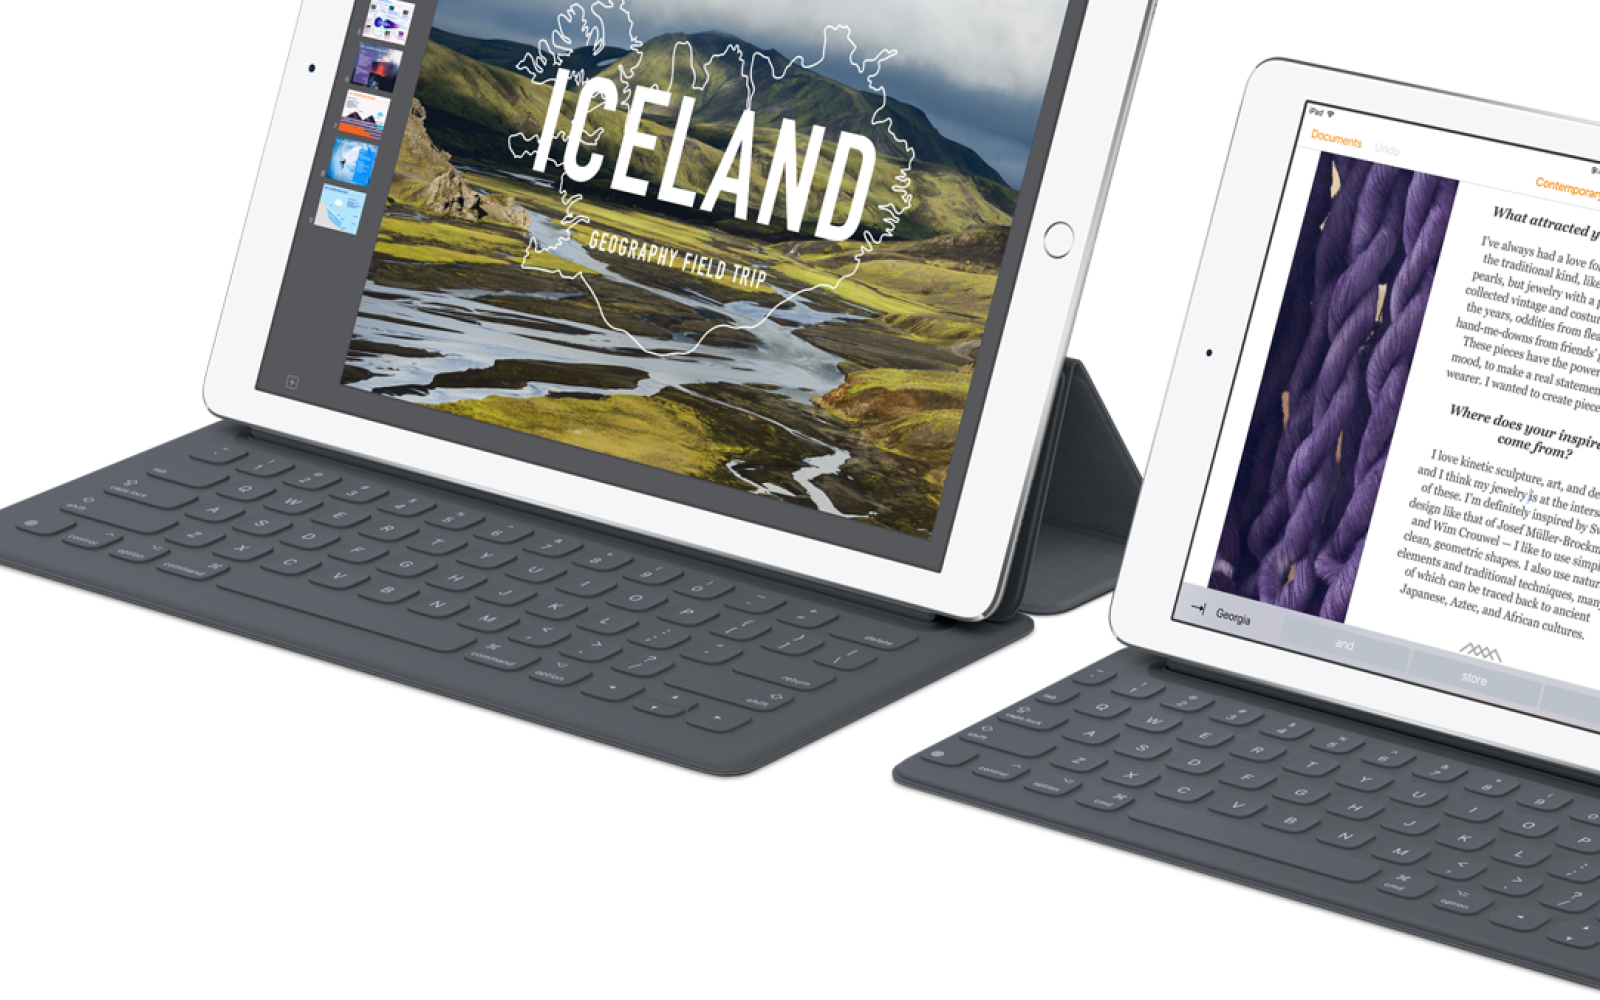 Apple offers extended three year repair program for iPad Pro Smart